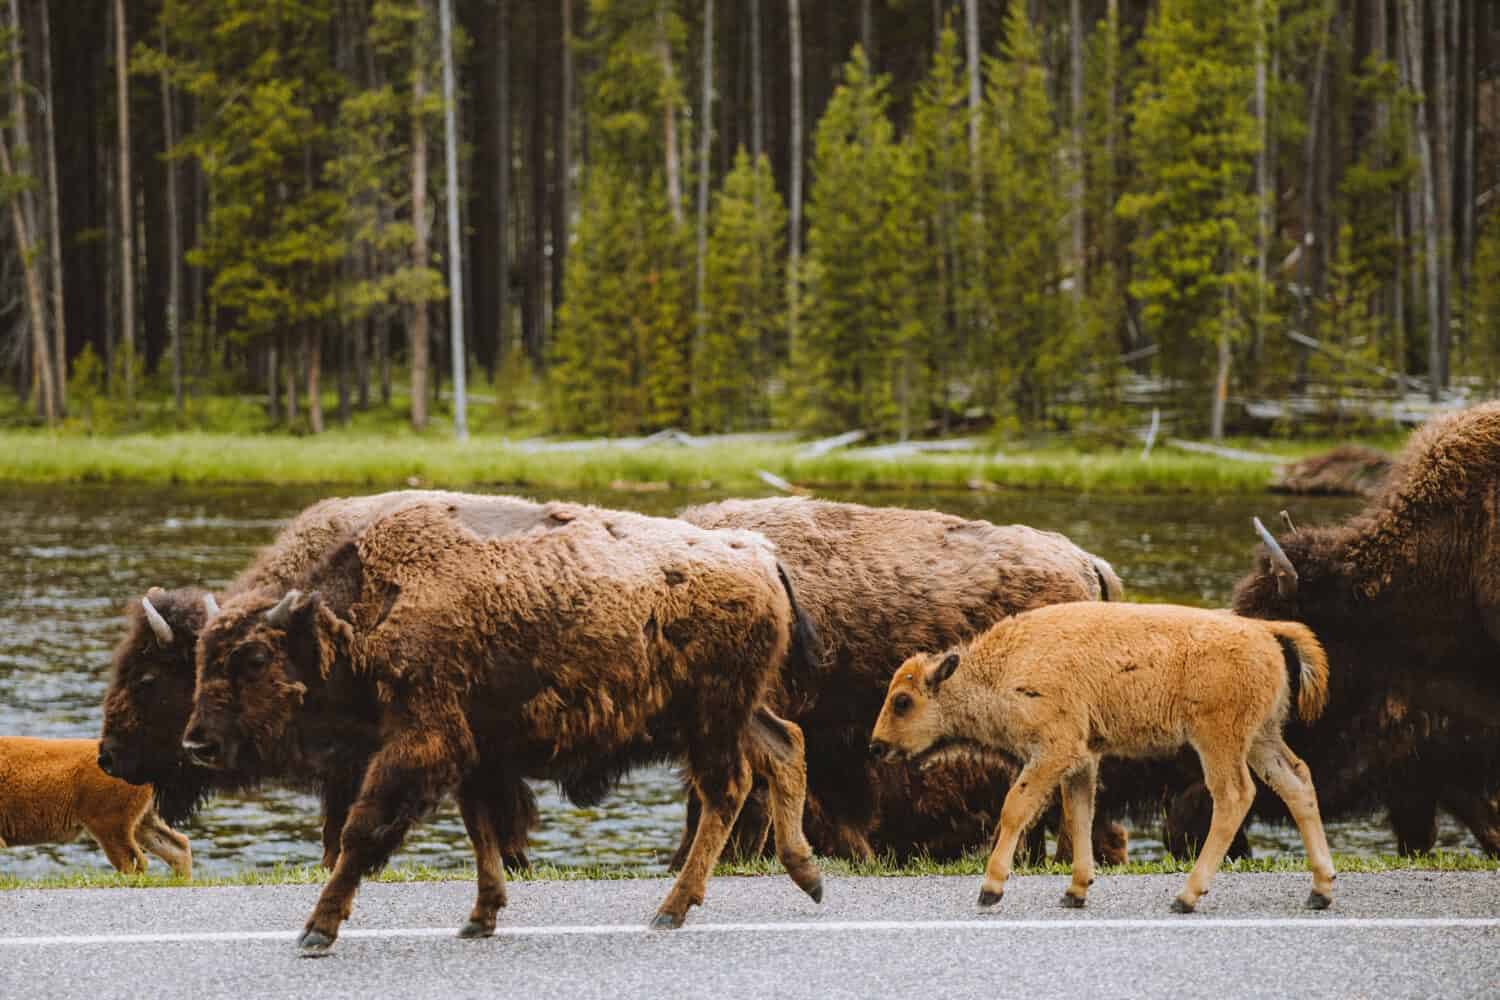 Yellowstone Wildlife - Bison and baby bison